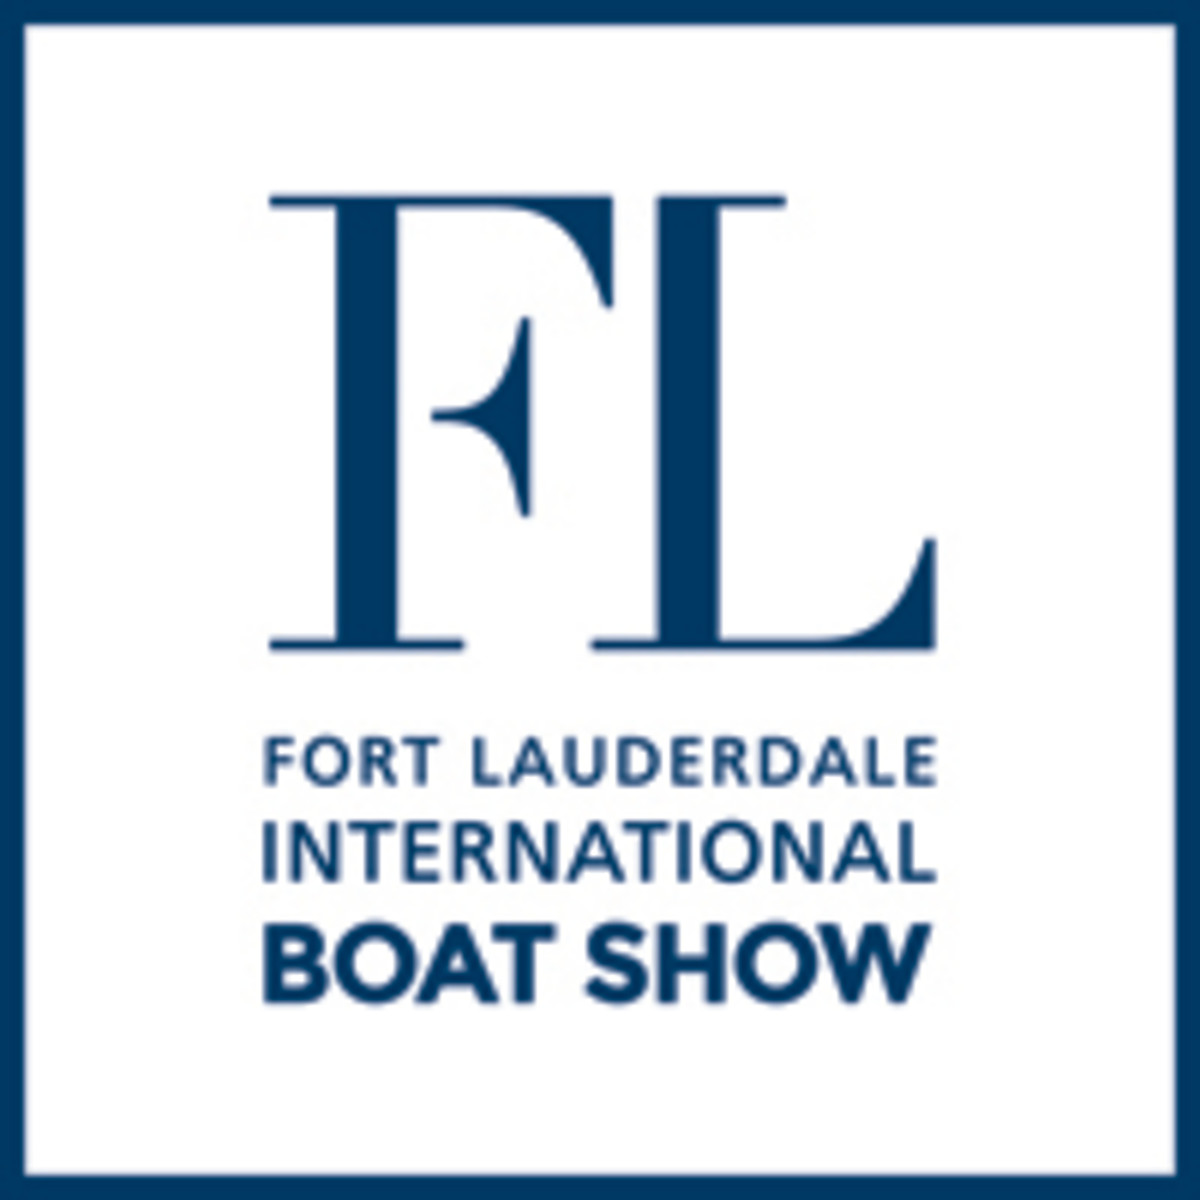 Copy of Fort Lauderdale International Boat Show